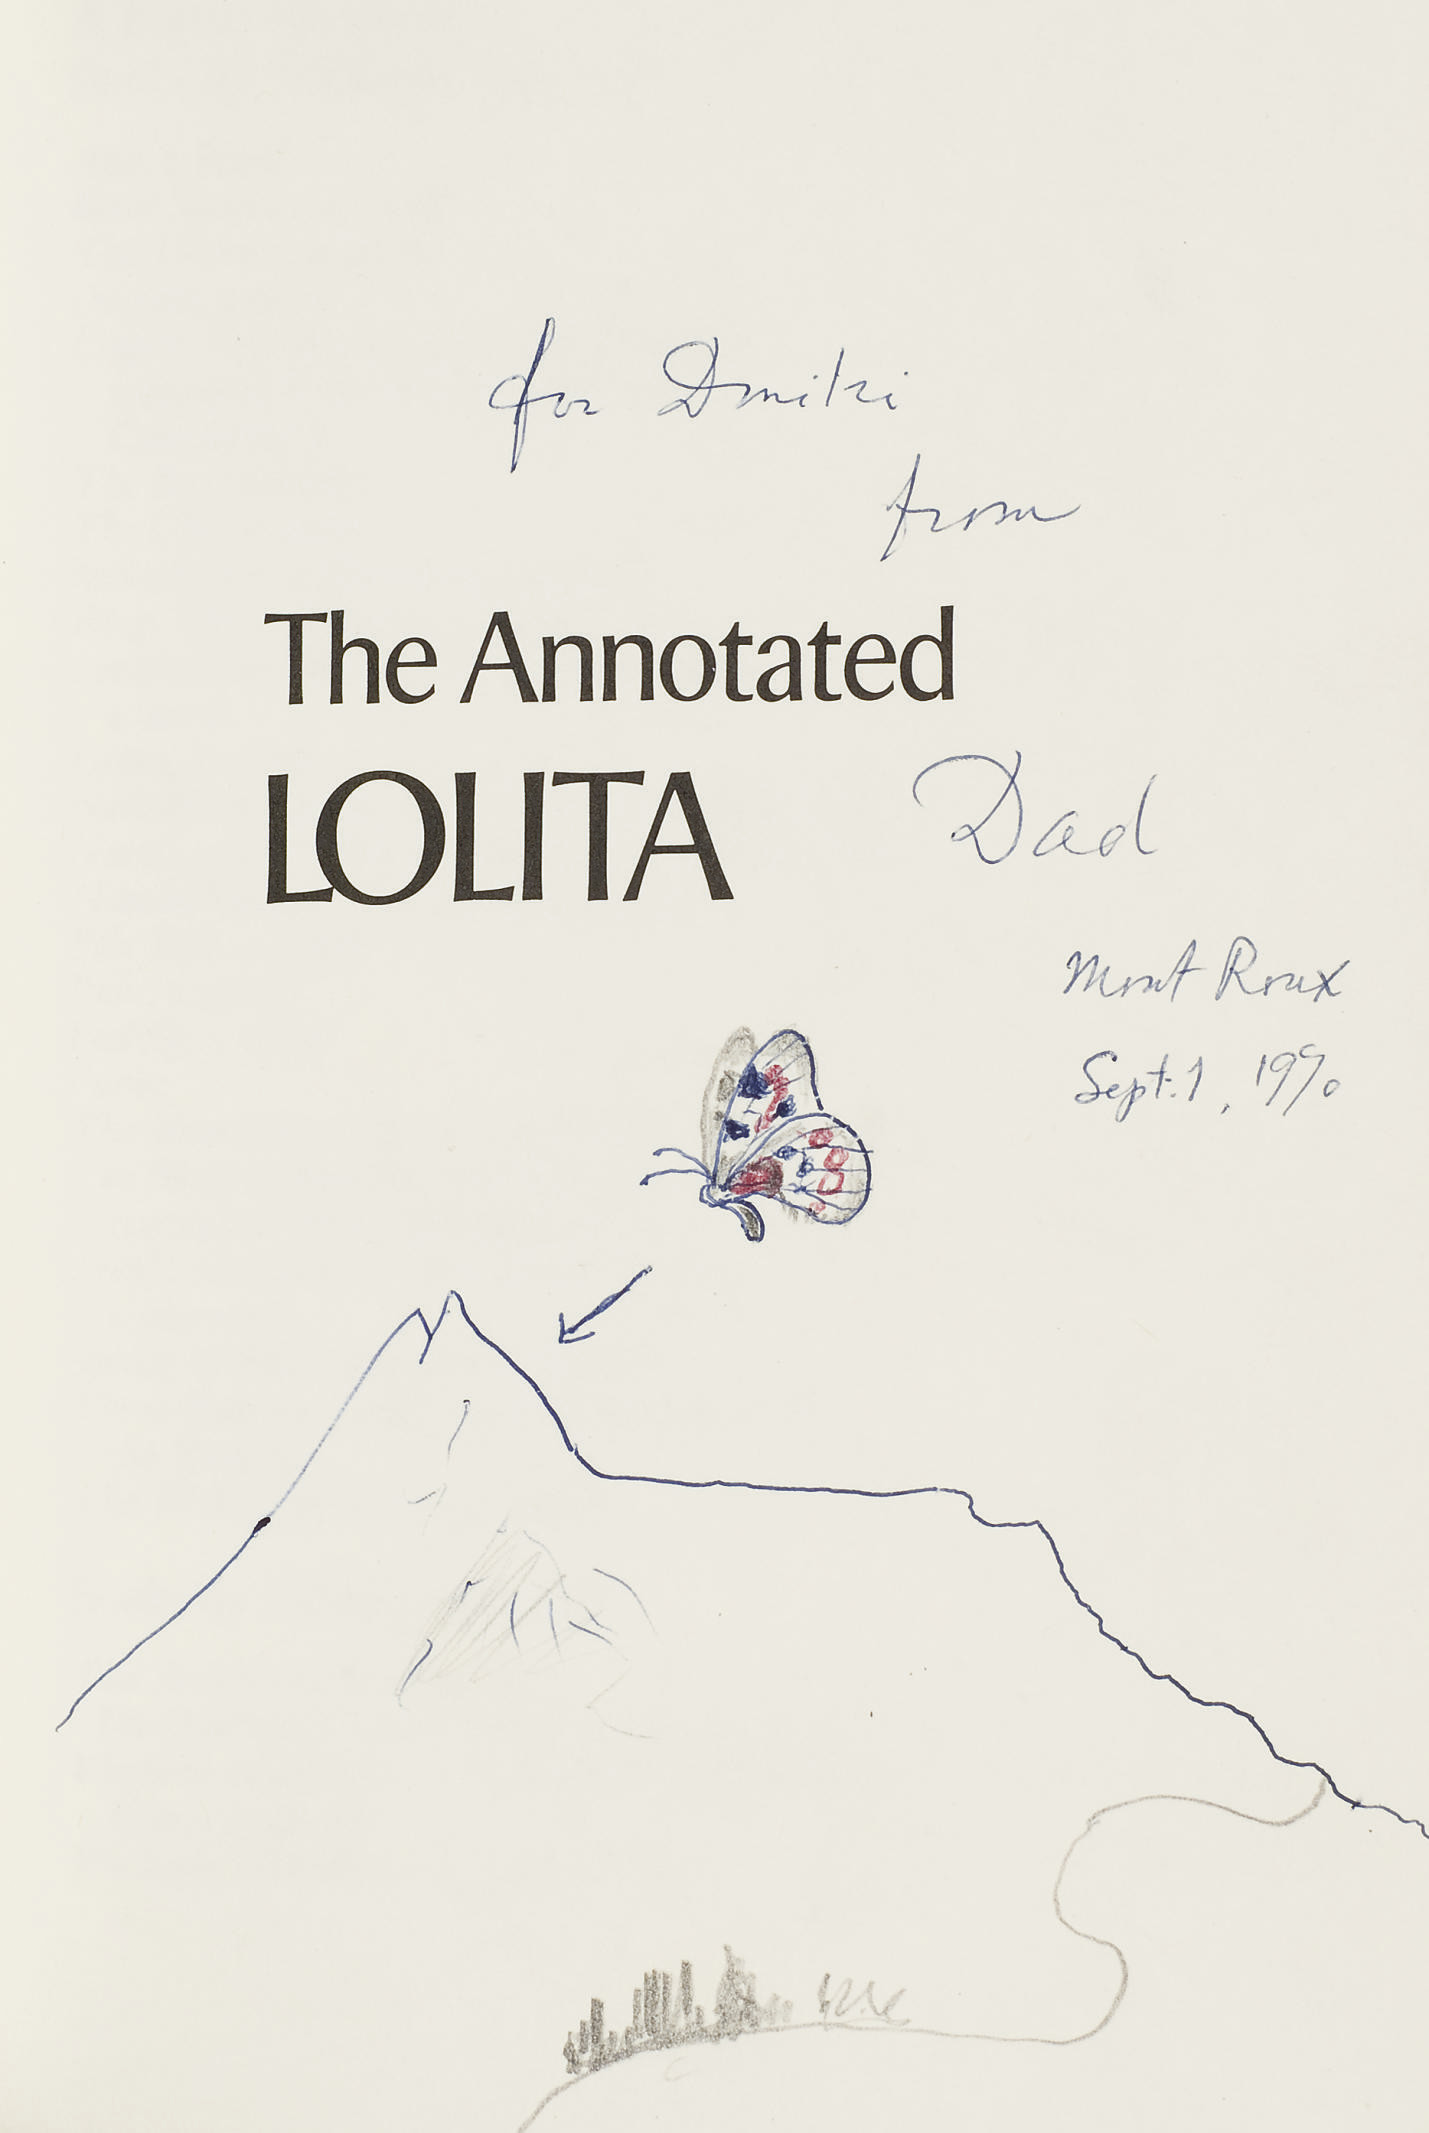 NABOKOV, Vladimir (1899-1977). The Annotated Lolita. New York, Toronto: McGraw-Hill Book Company, [1970].